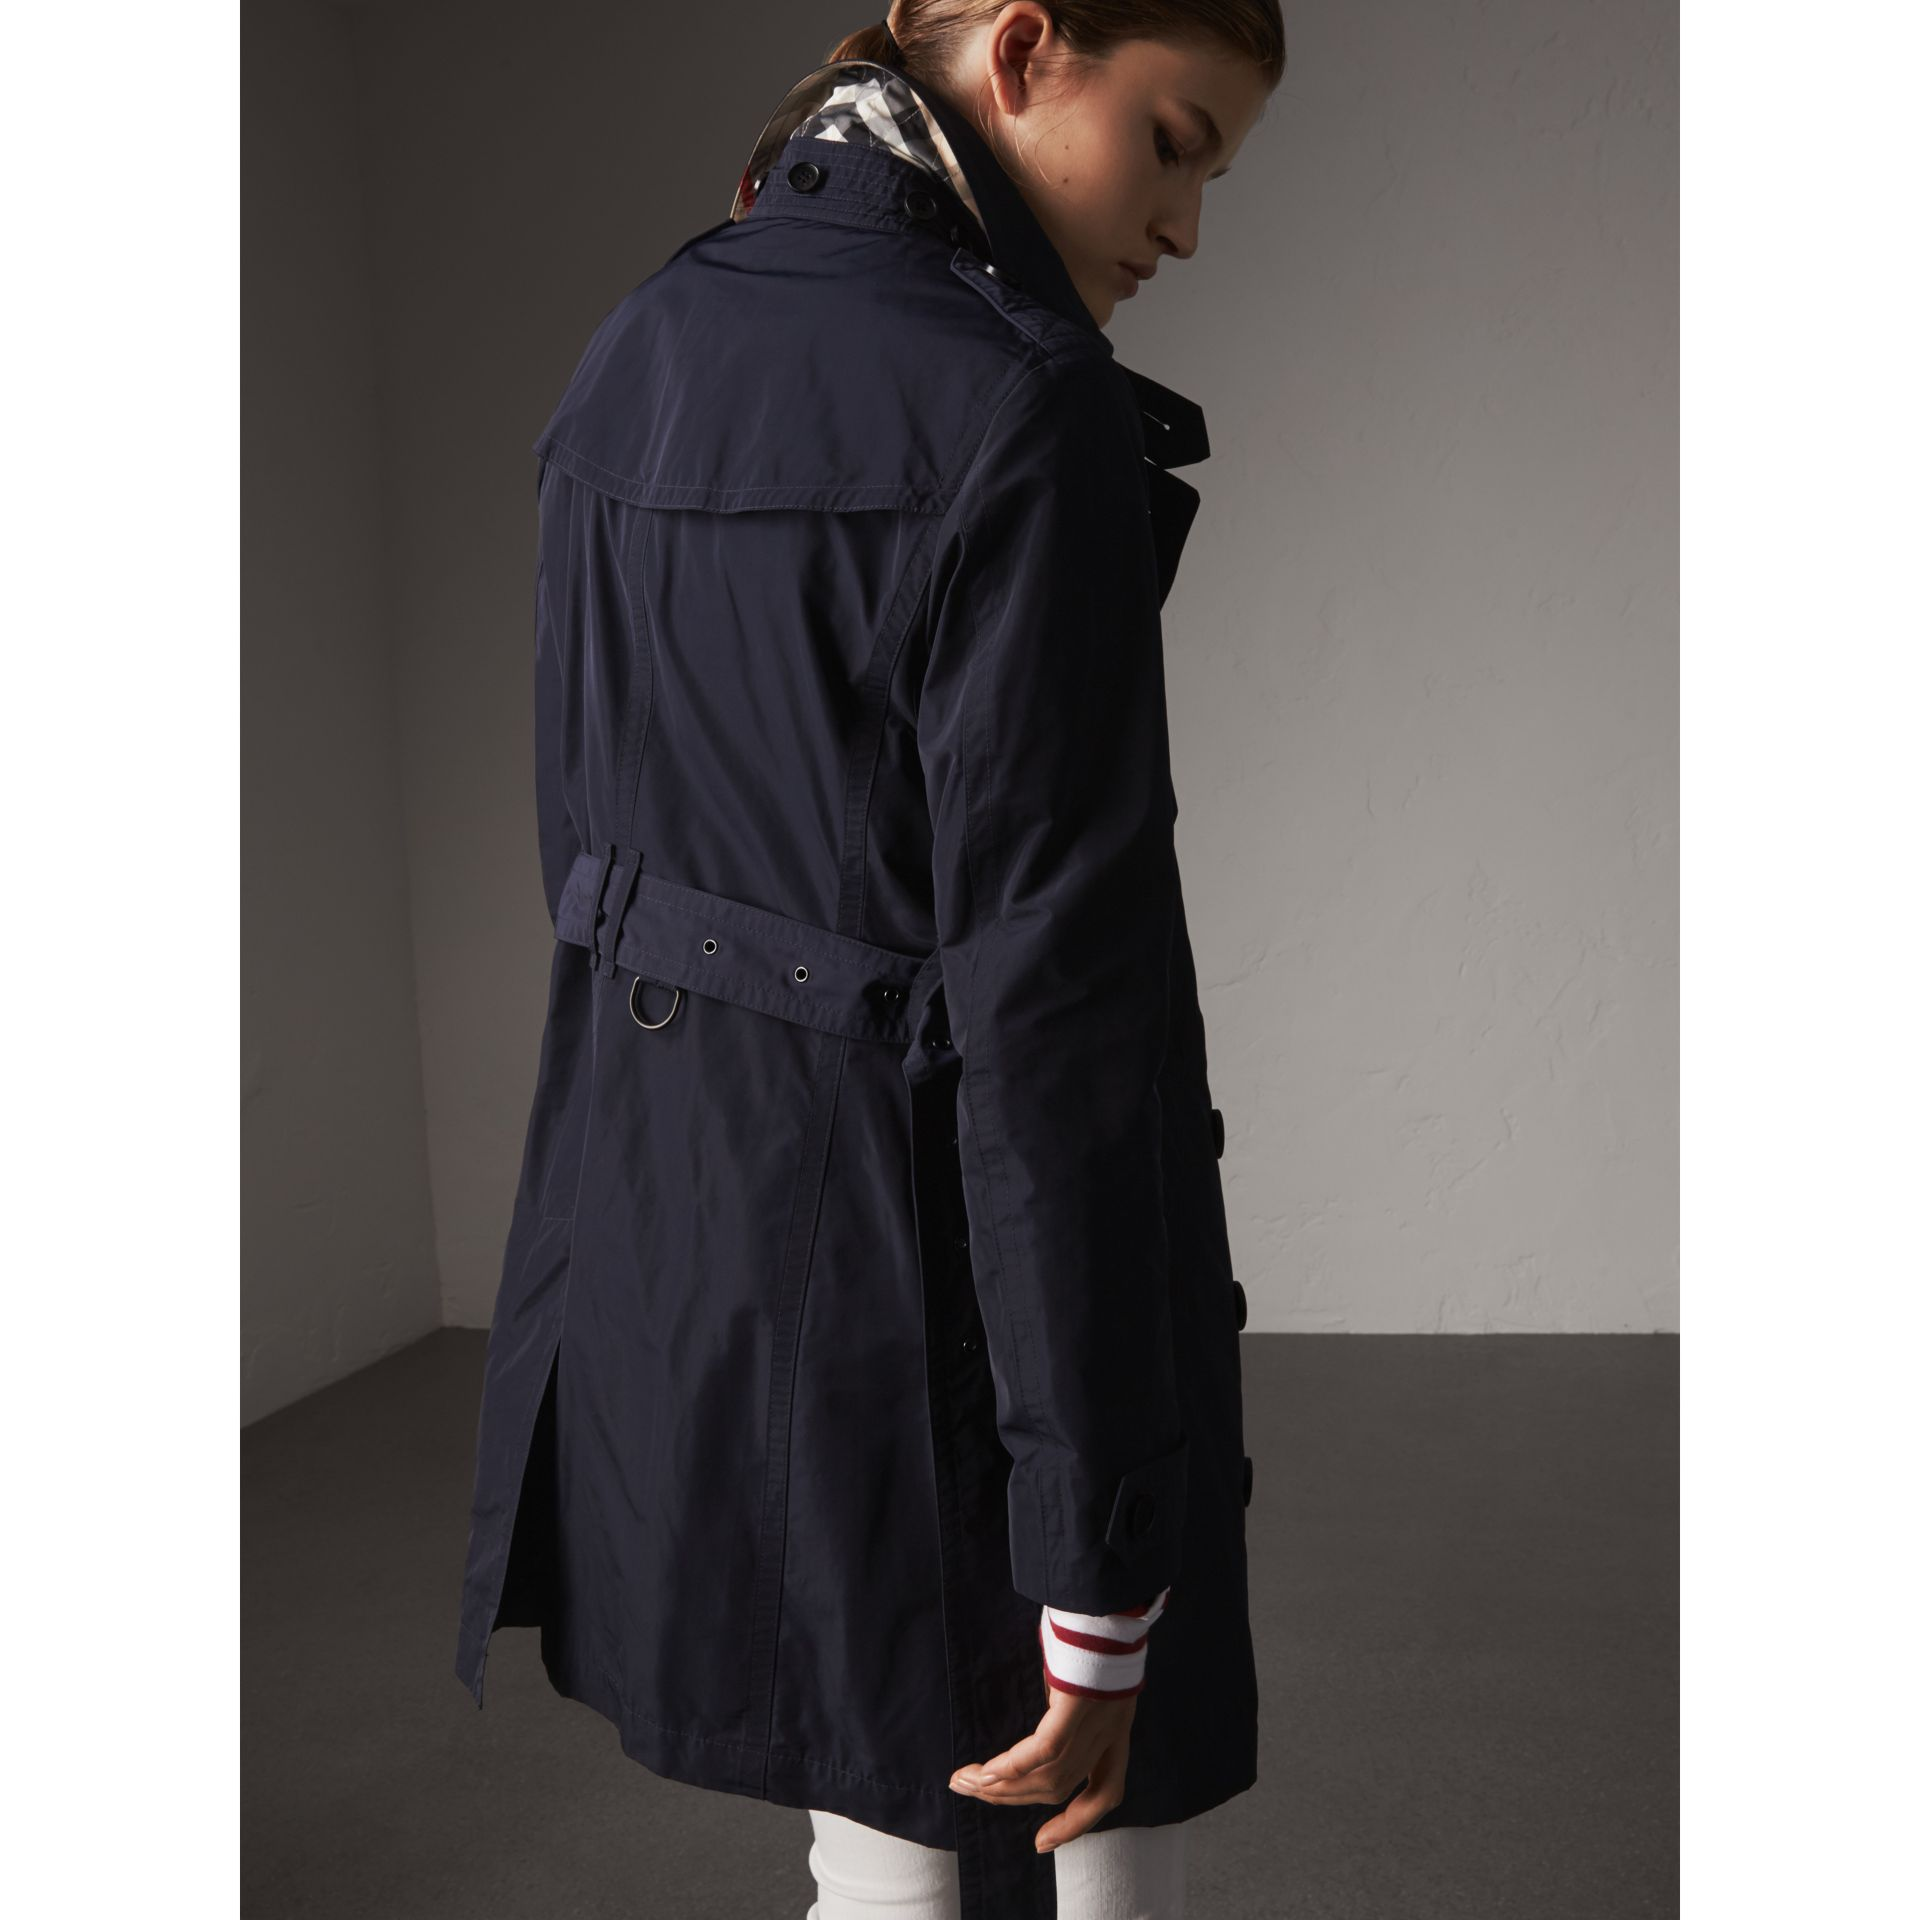 Taffeta Trench Coat with Detachable Hood in Navy - Women | Burberry Hong Kong - gallery image 3